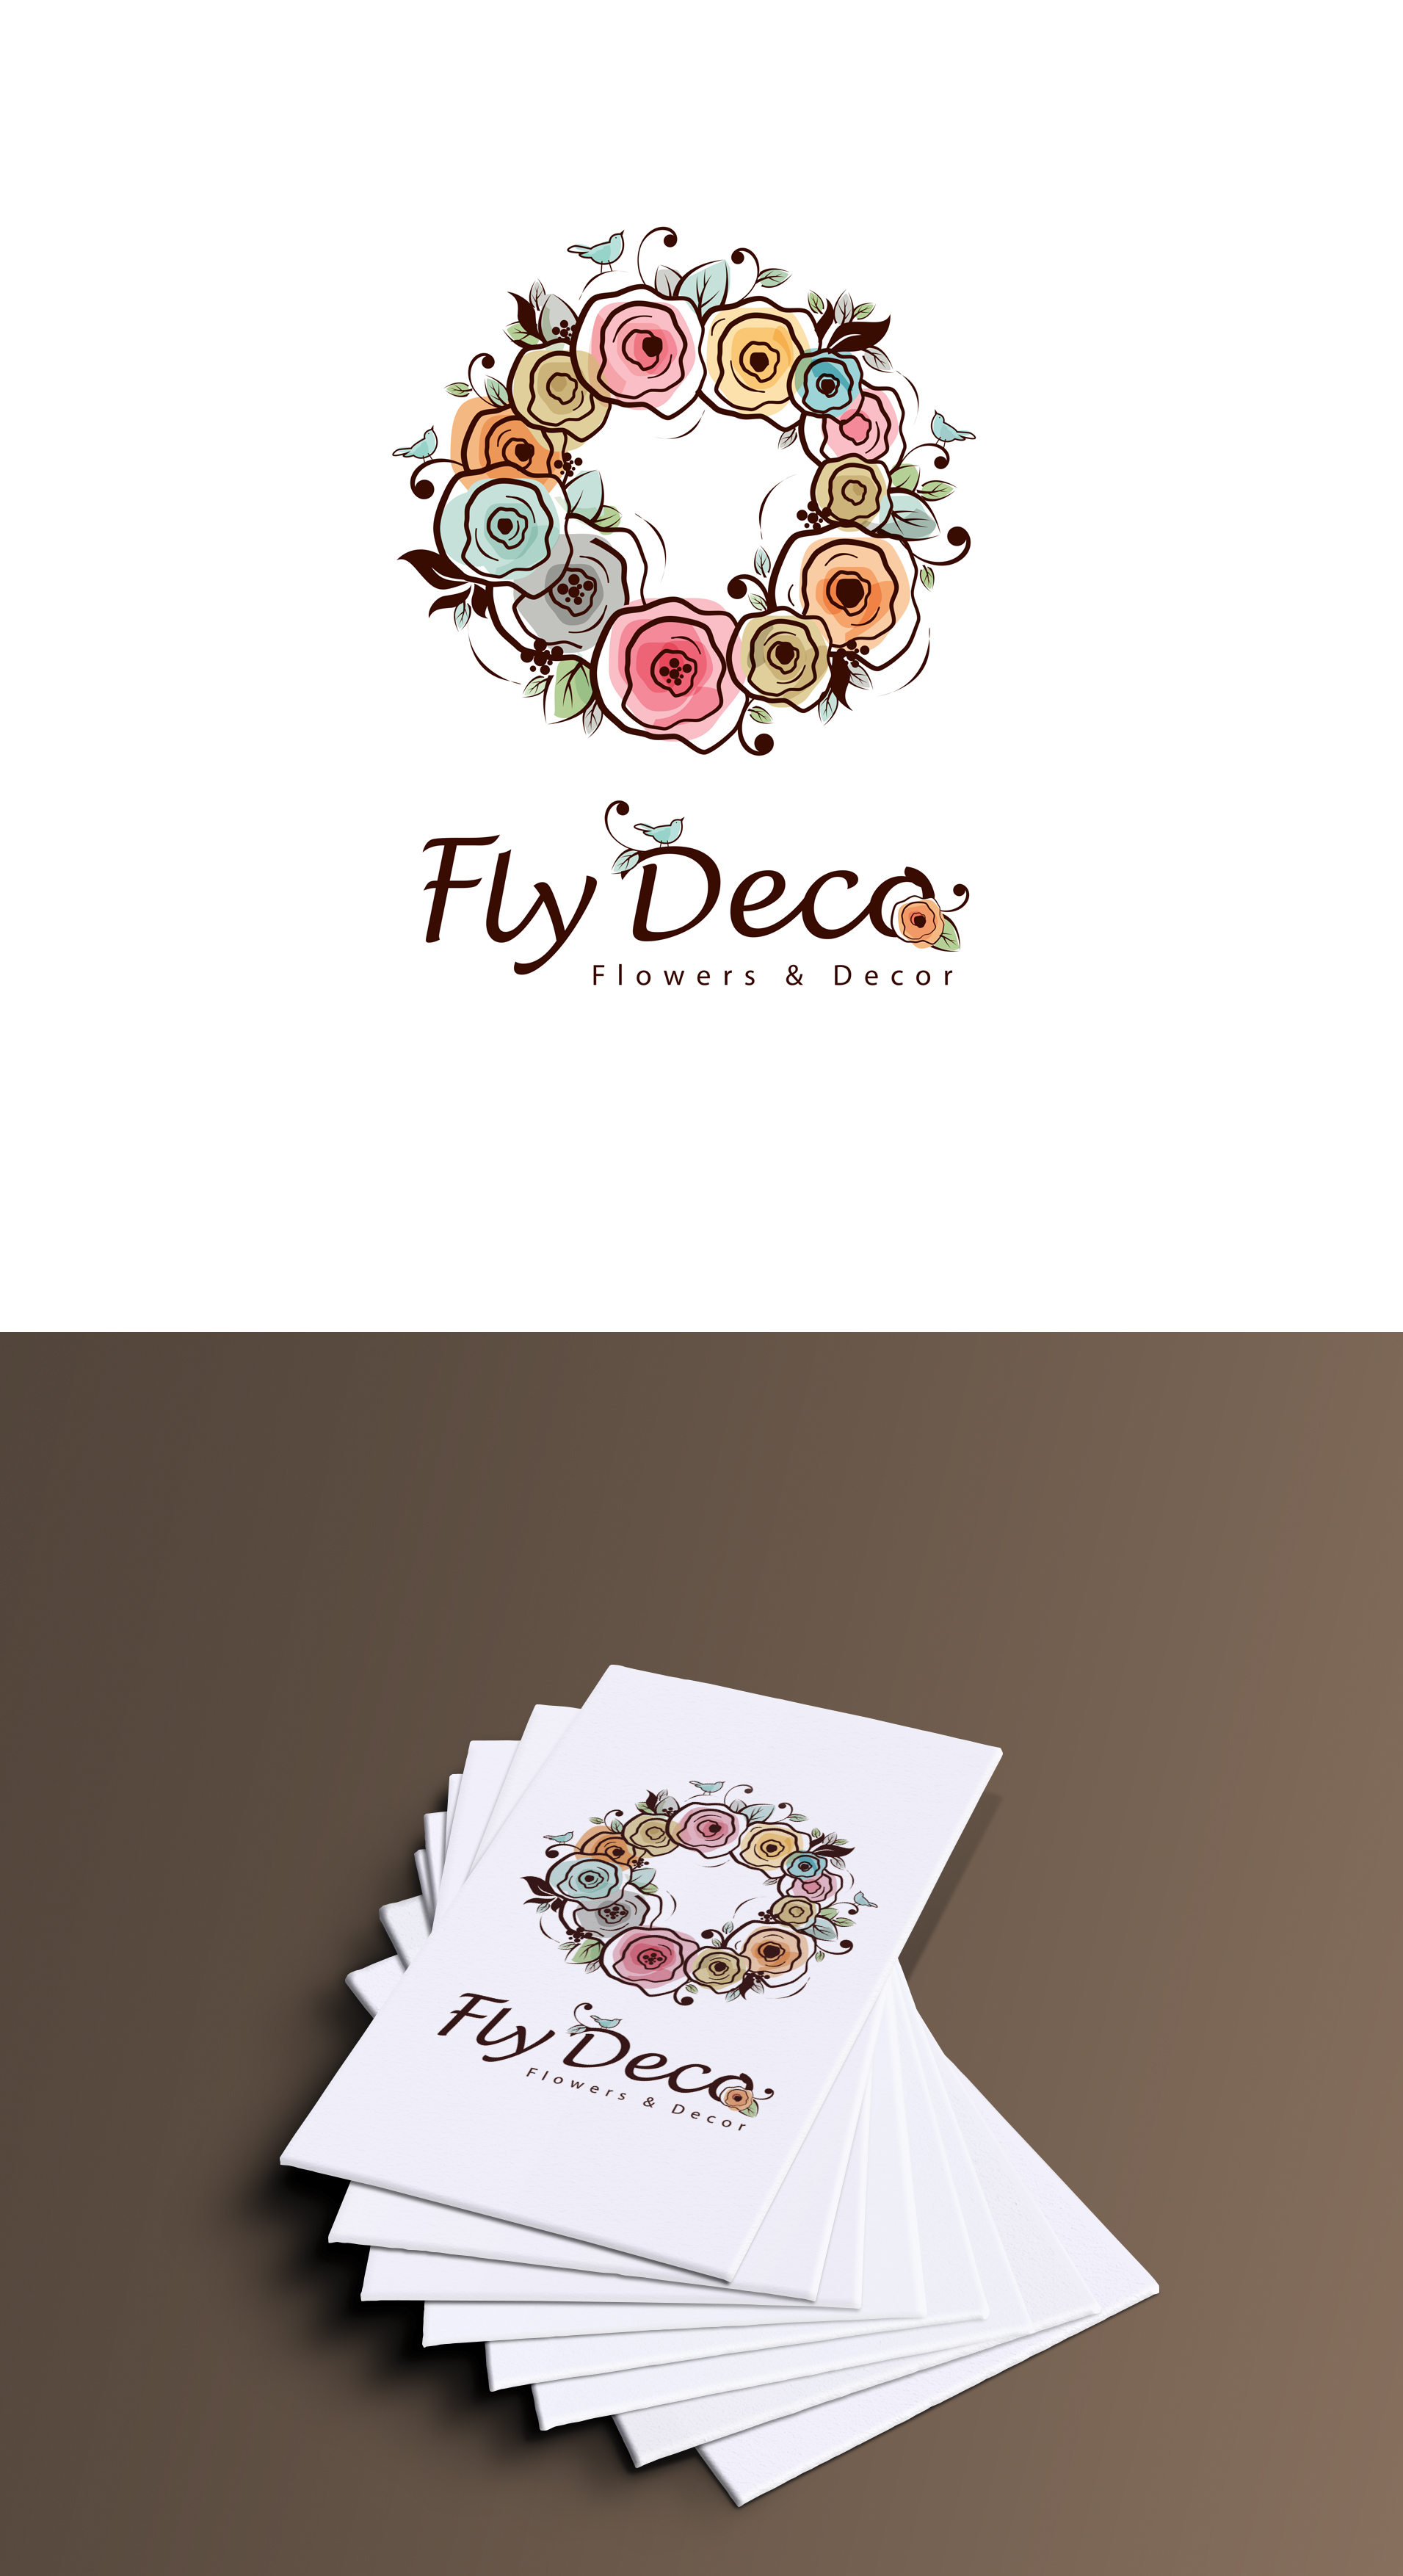 Fly Deco